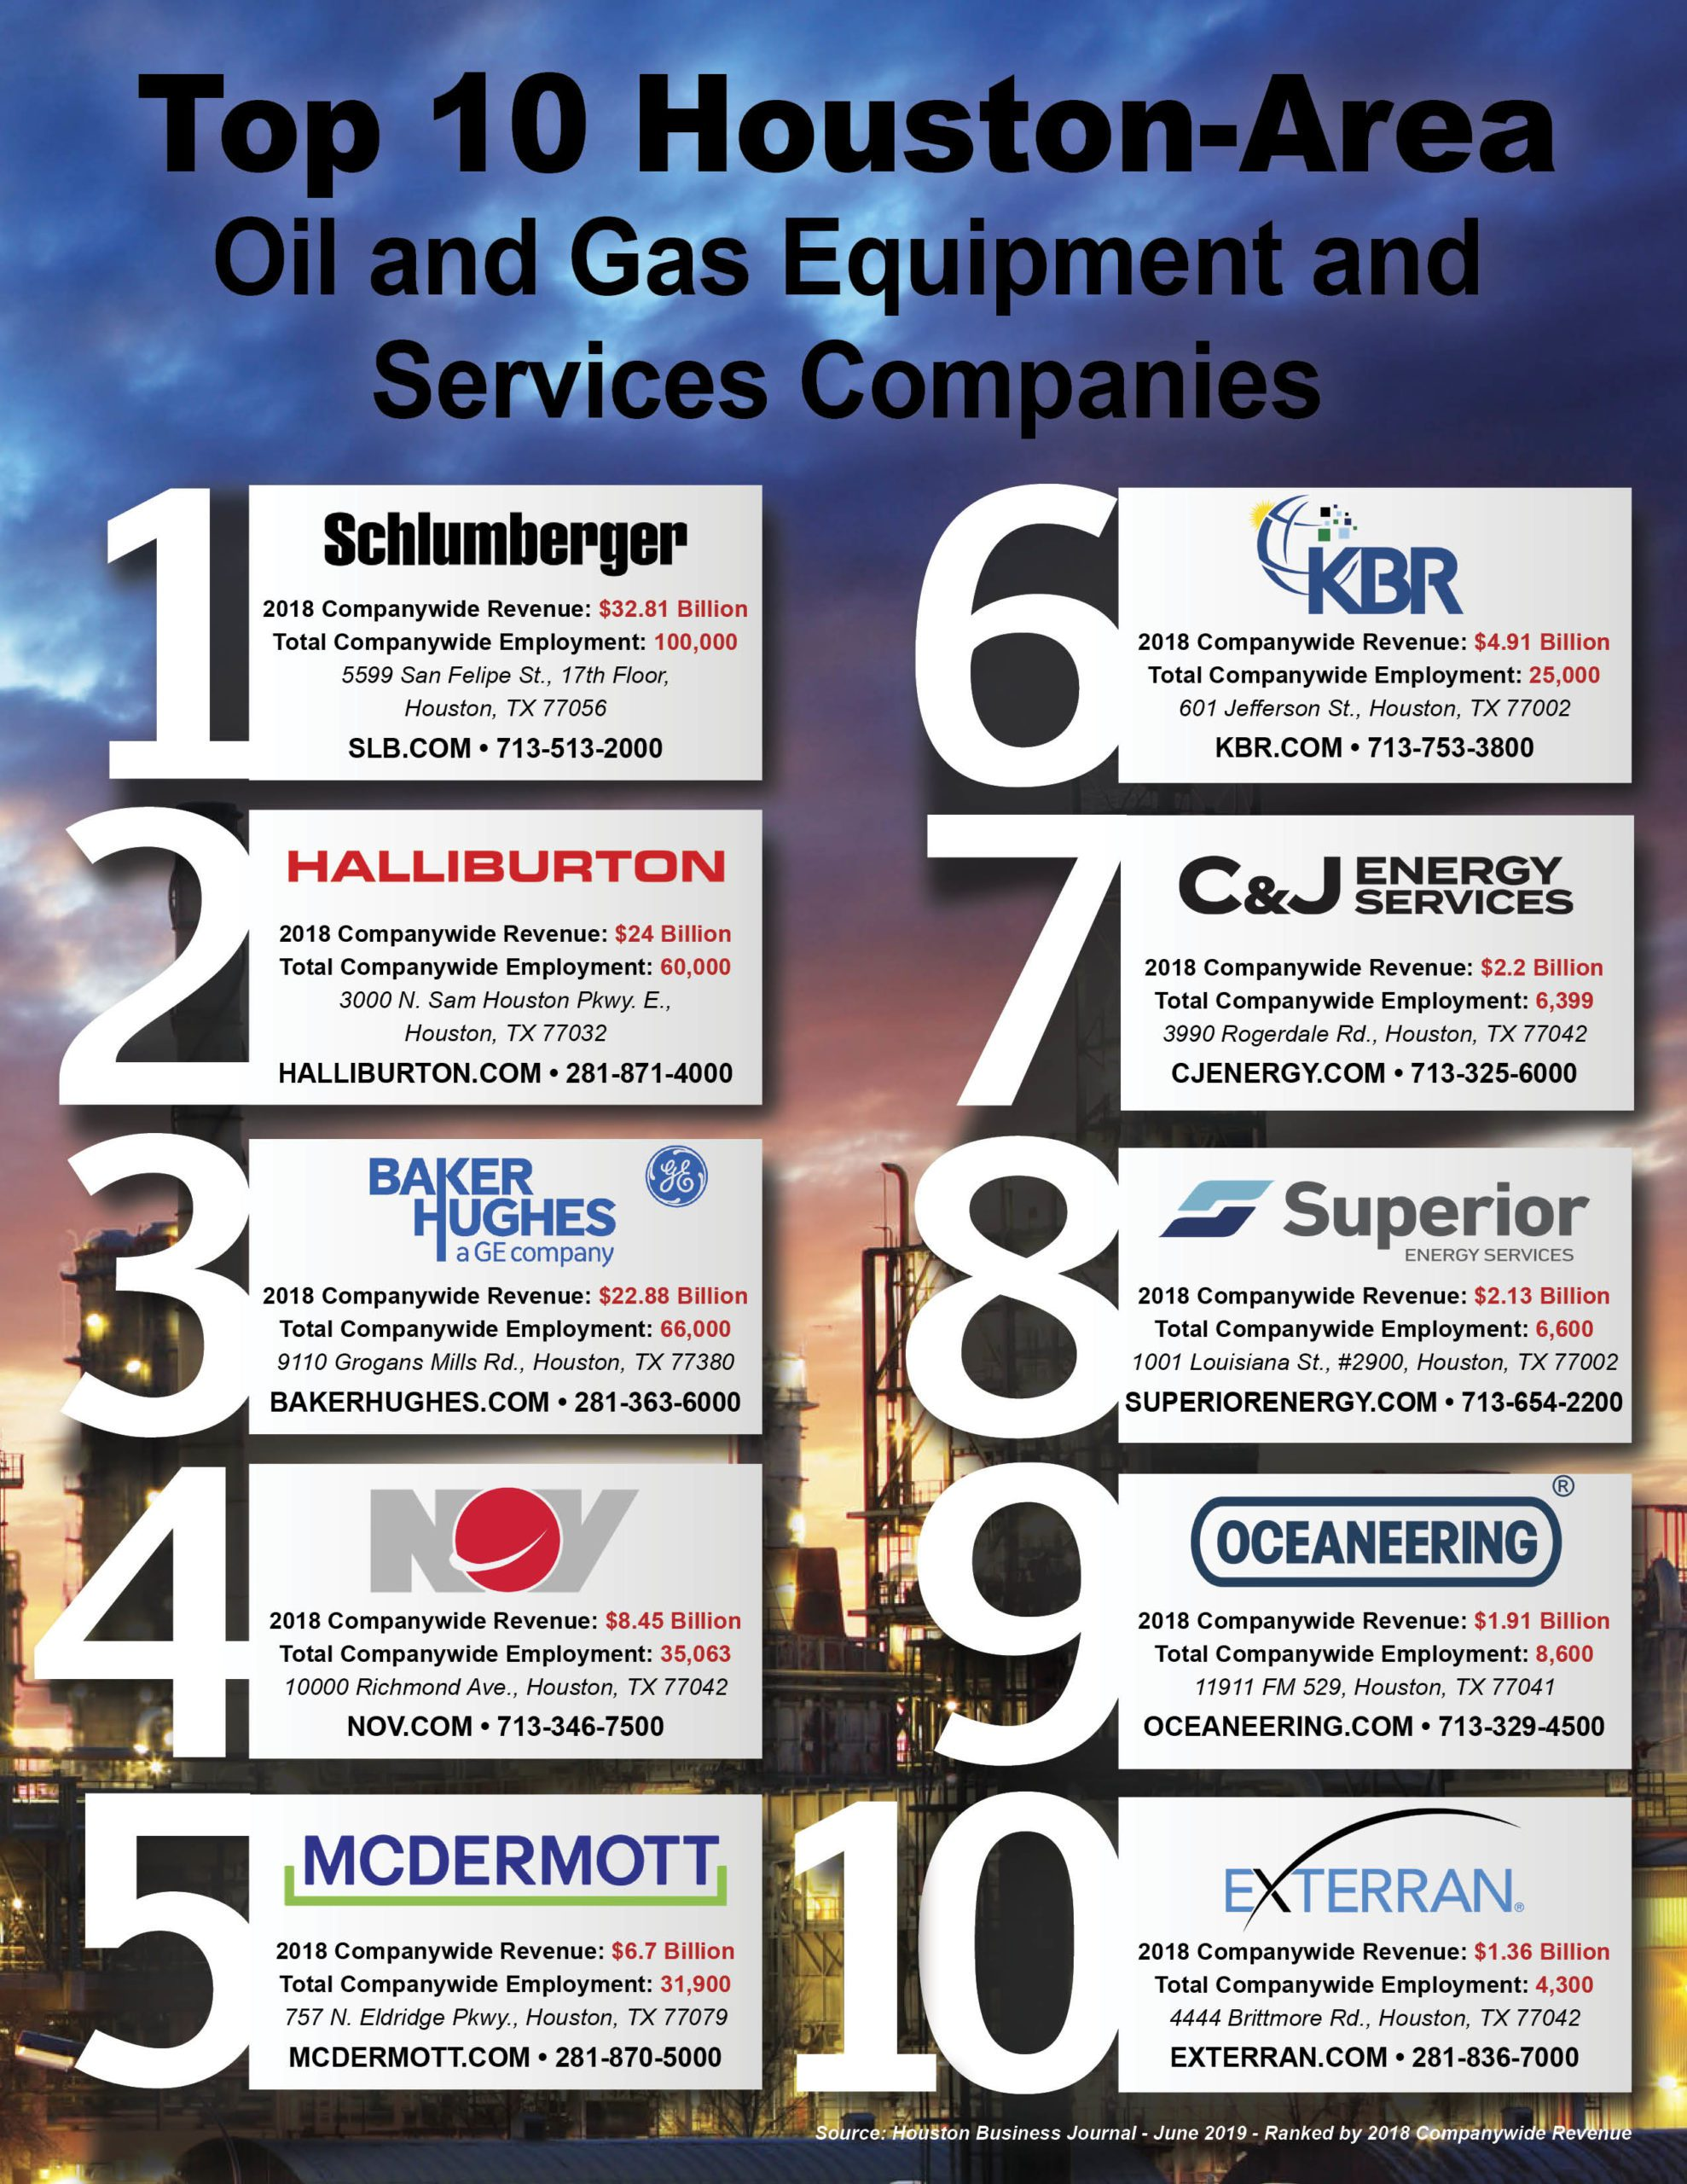 Top 10 Houston-Area Oil and Gas Equipment and Services Companies